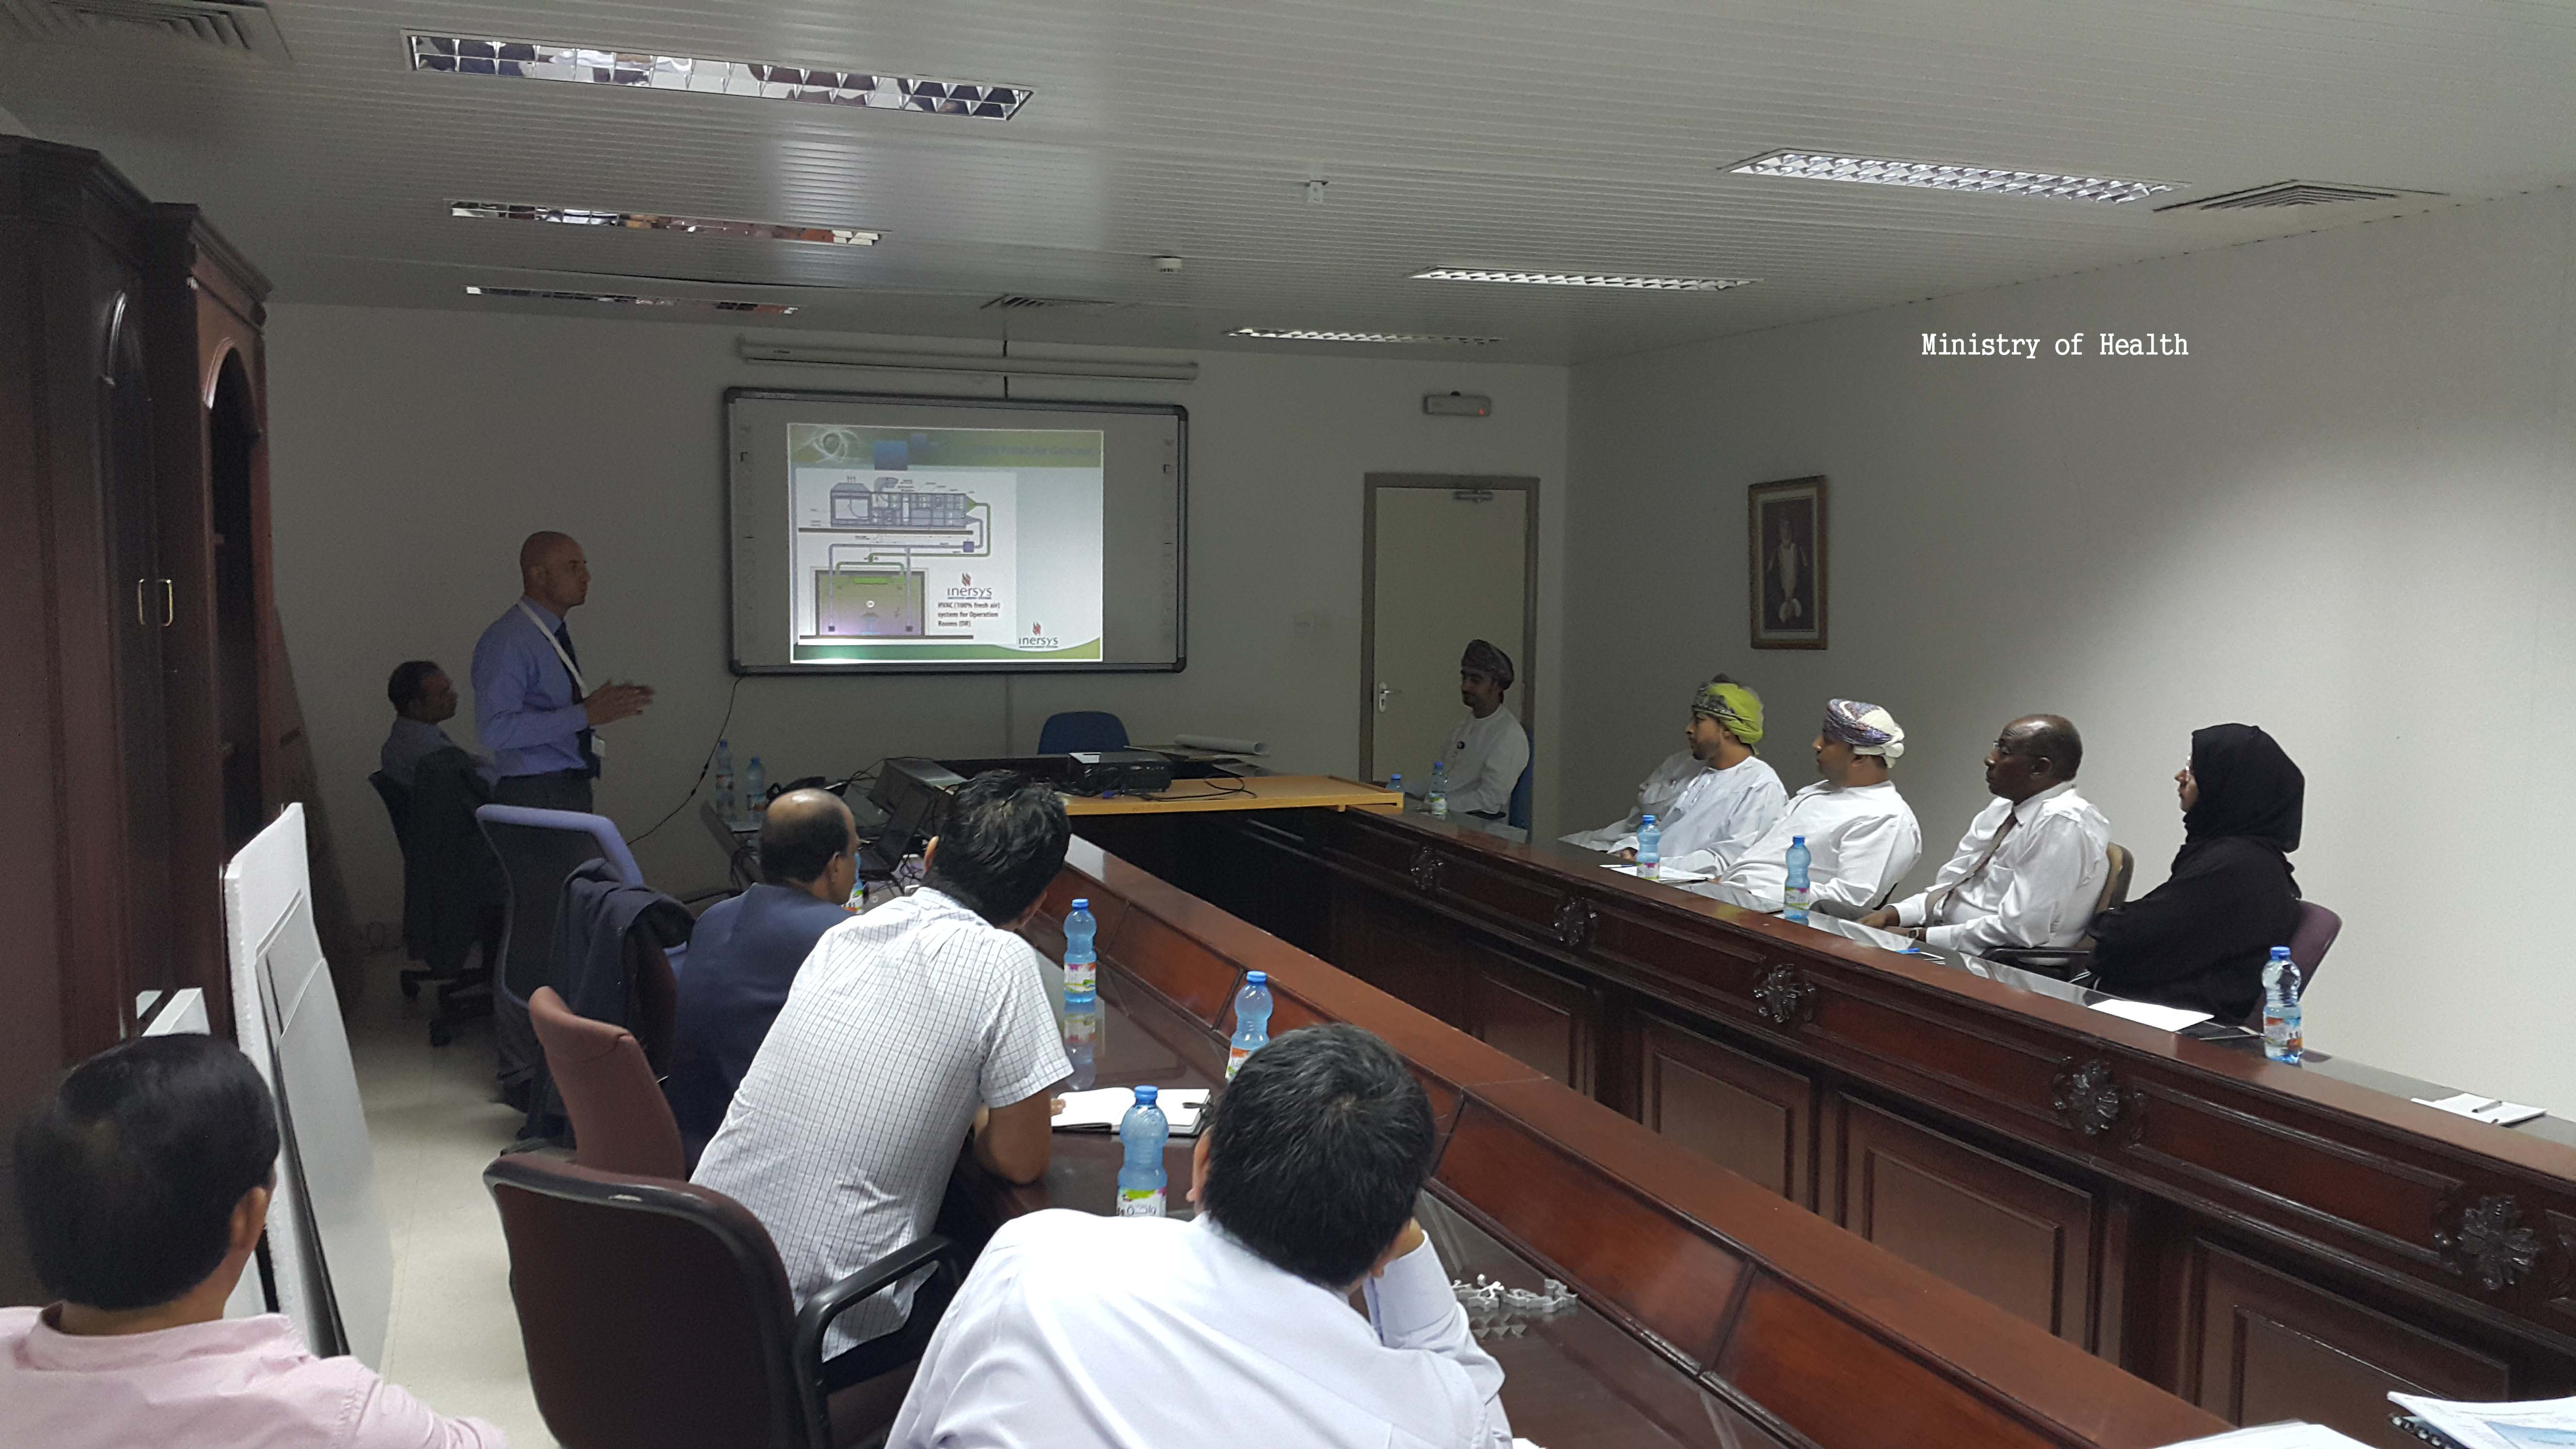 Damvent gives two technical seminars/presentations in Muscat (Oman)